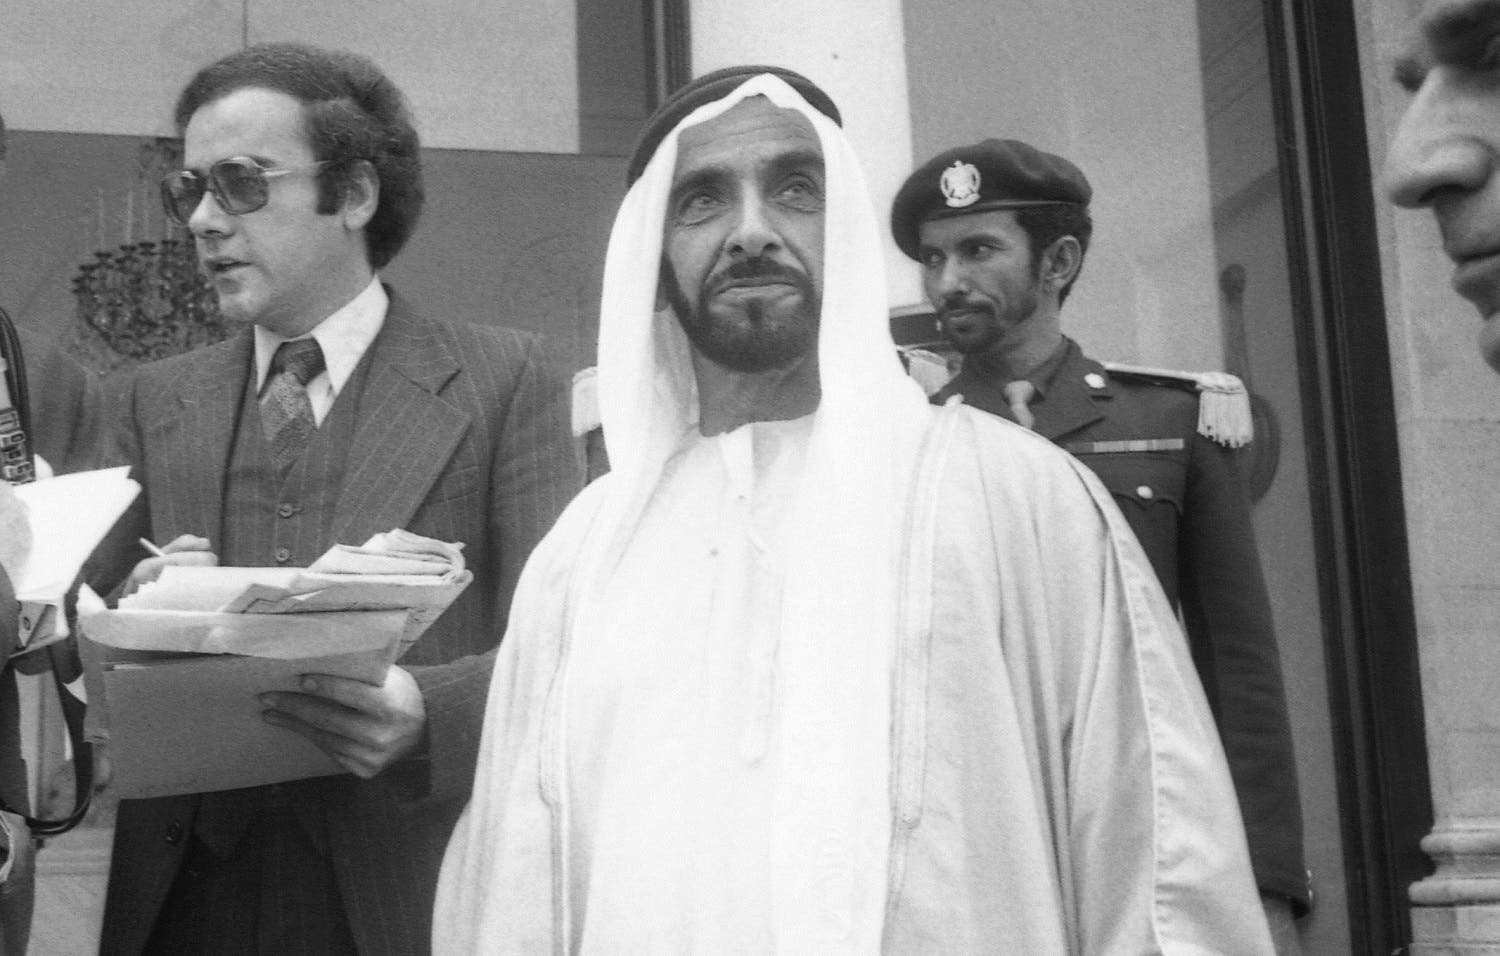 Late Sheikh Zayed bin Sultan Al Nahyan at the Elysee Palace on July 4, 1975. (AP)